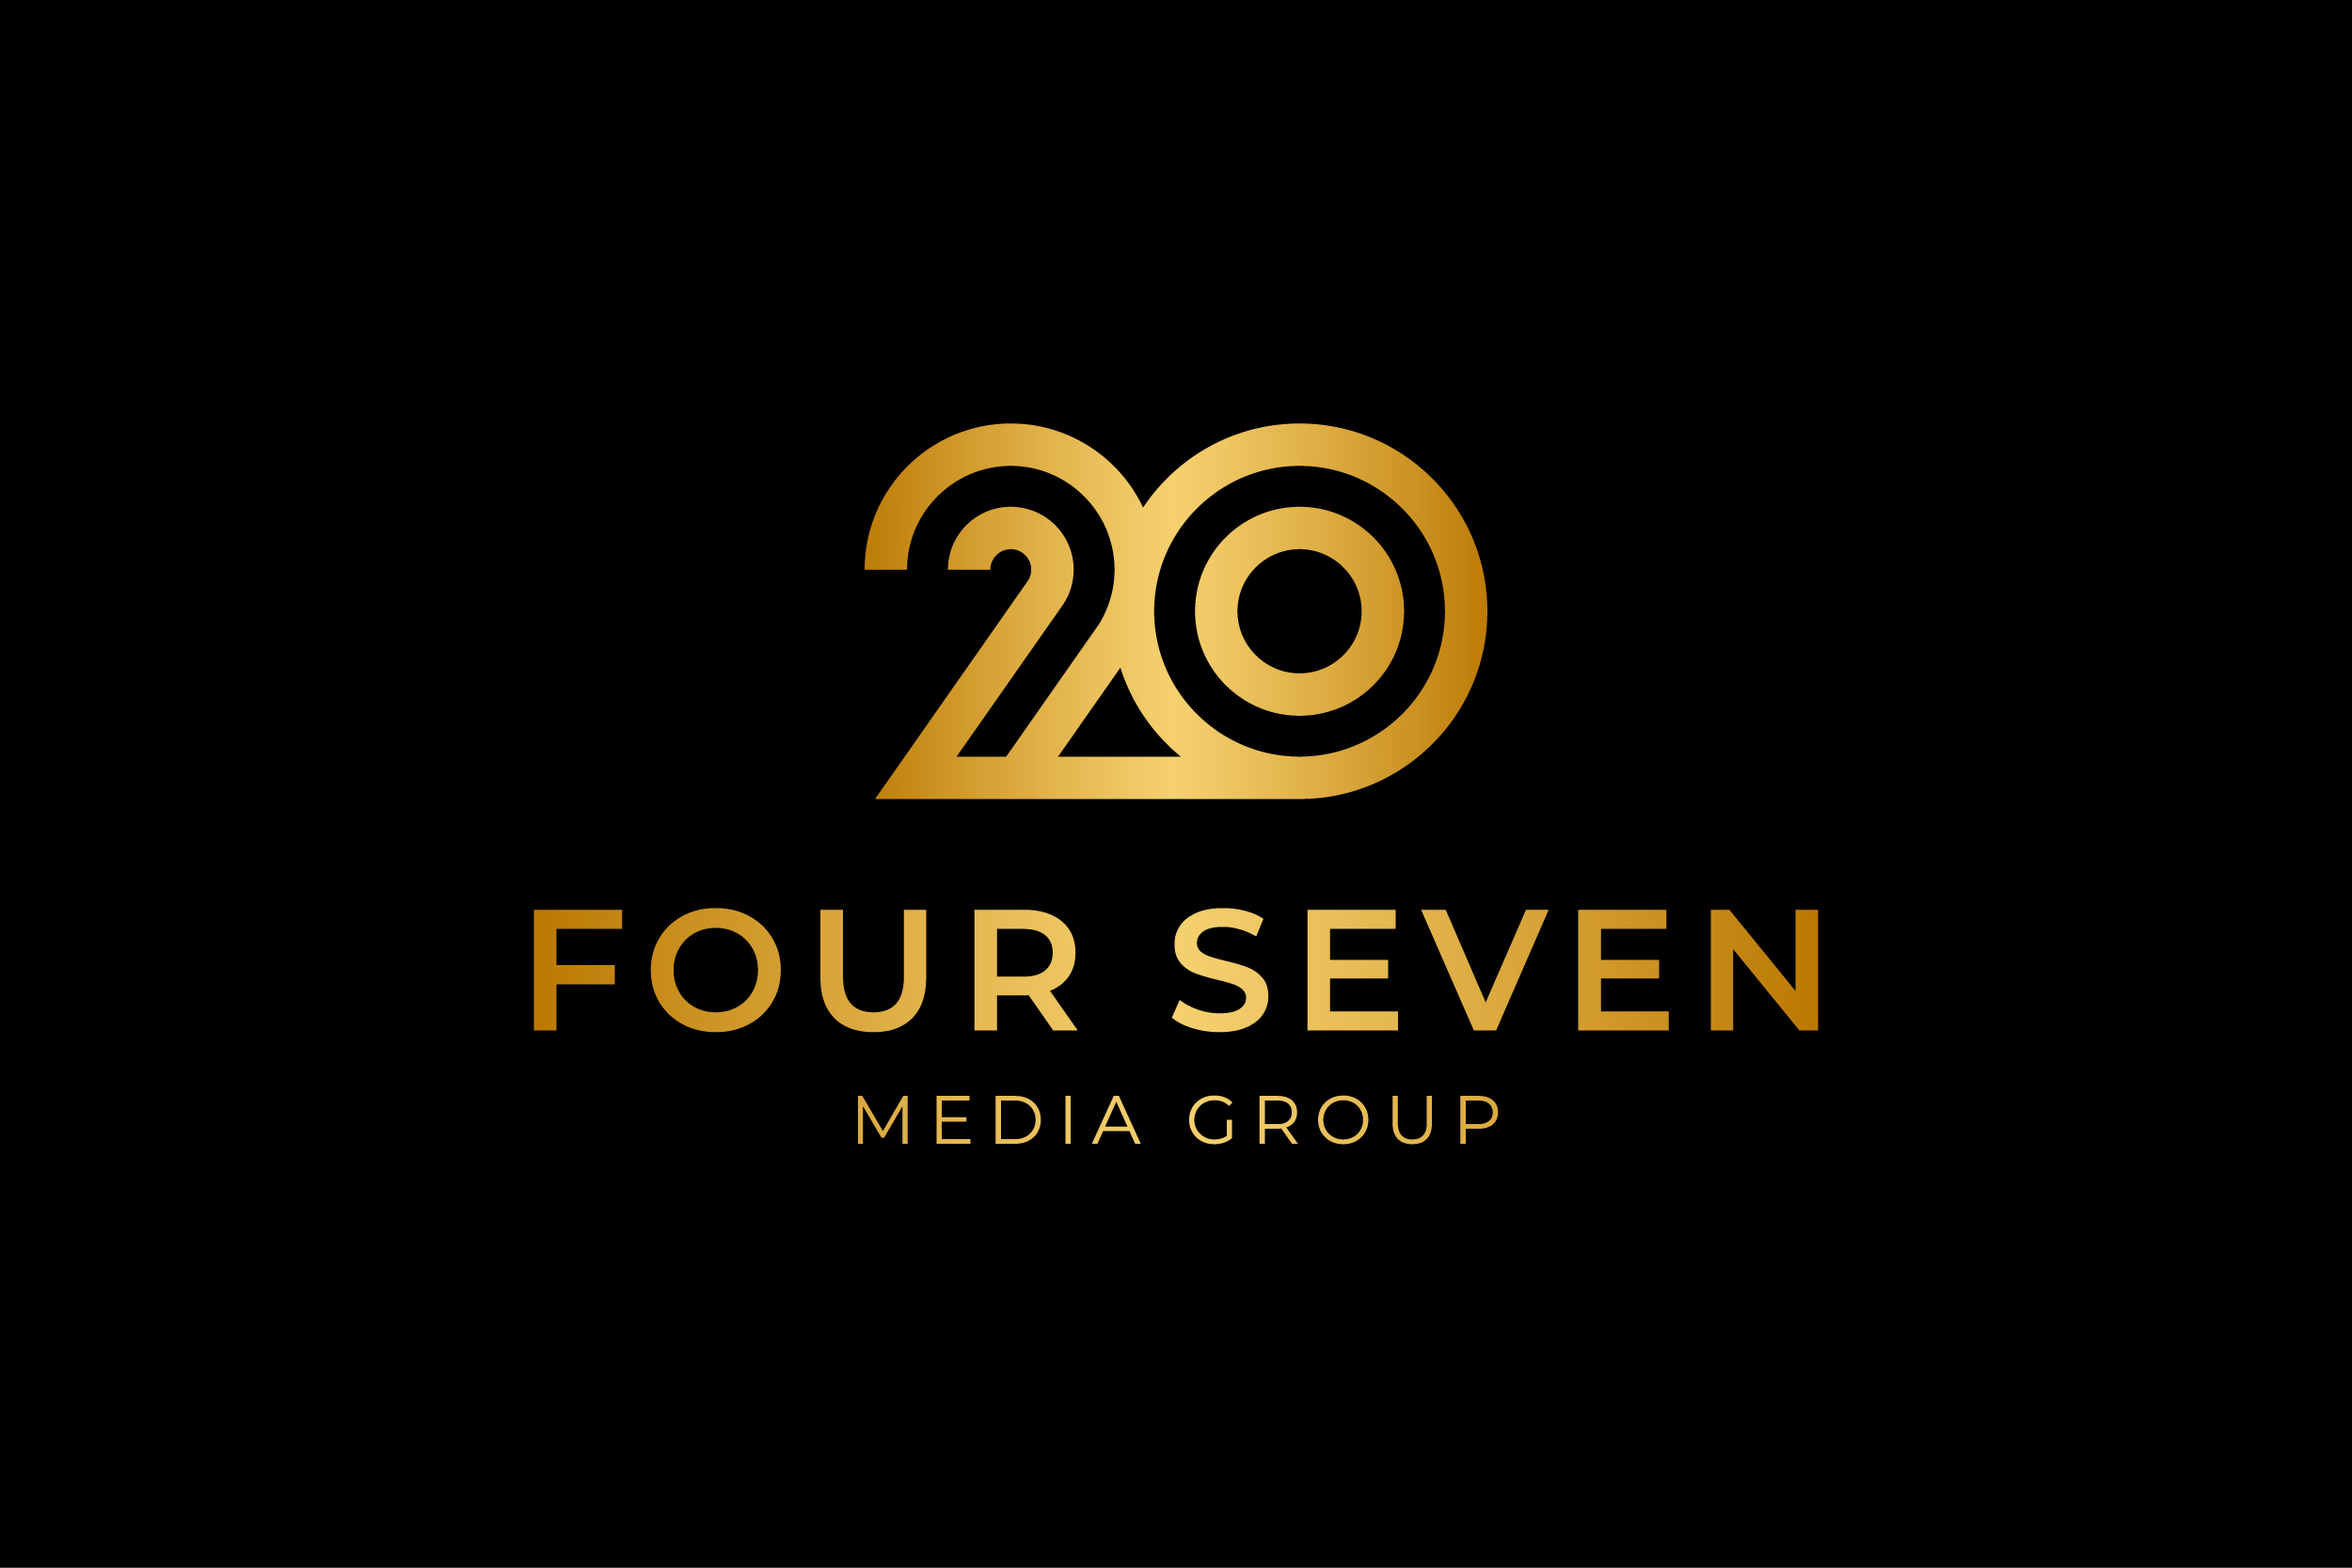 20 FOUR SEVEN MEDIA GROUP